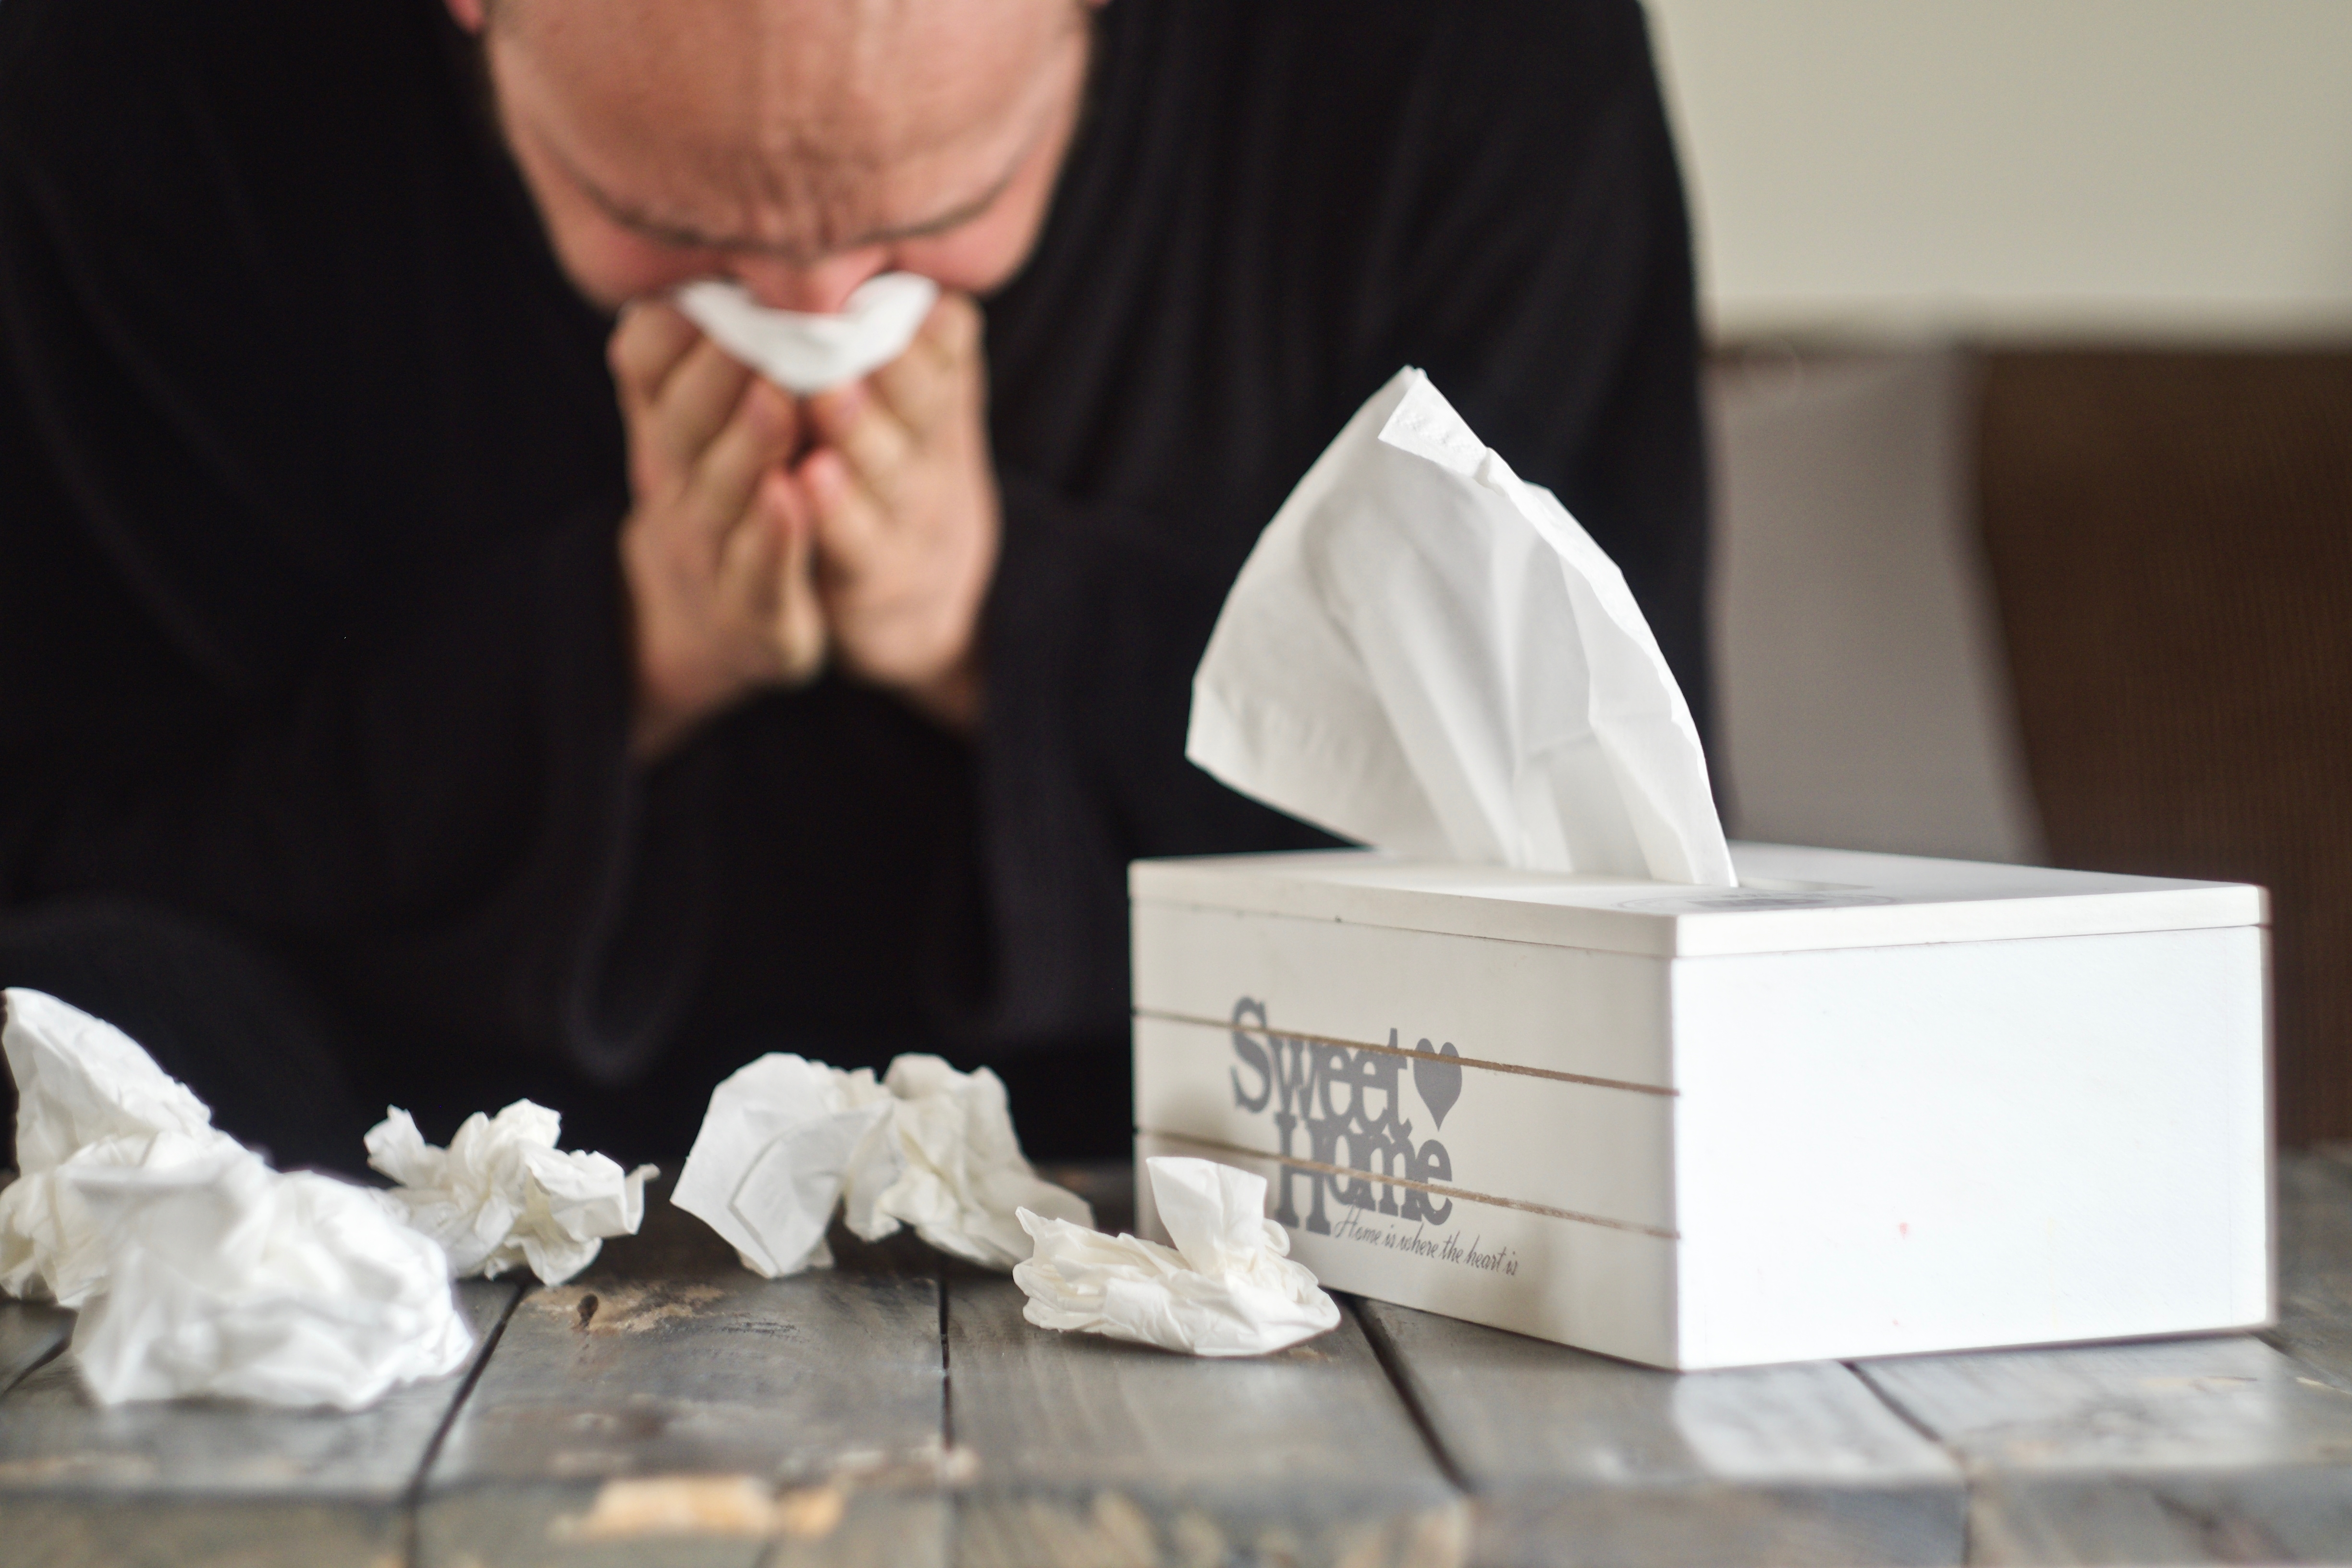 Take Control of Your Health: 5 Flu Prevention Tips for Seniors